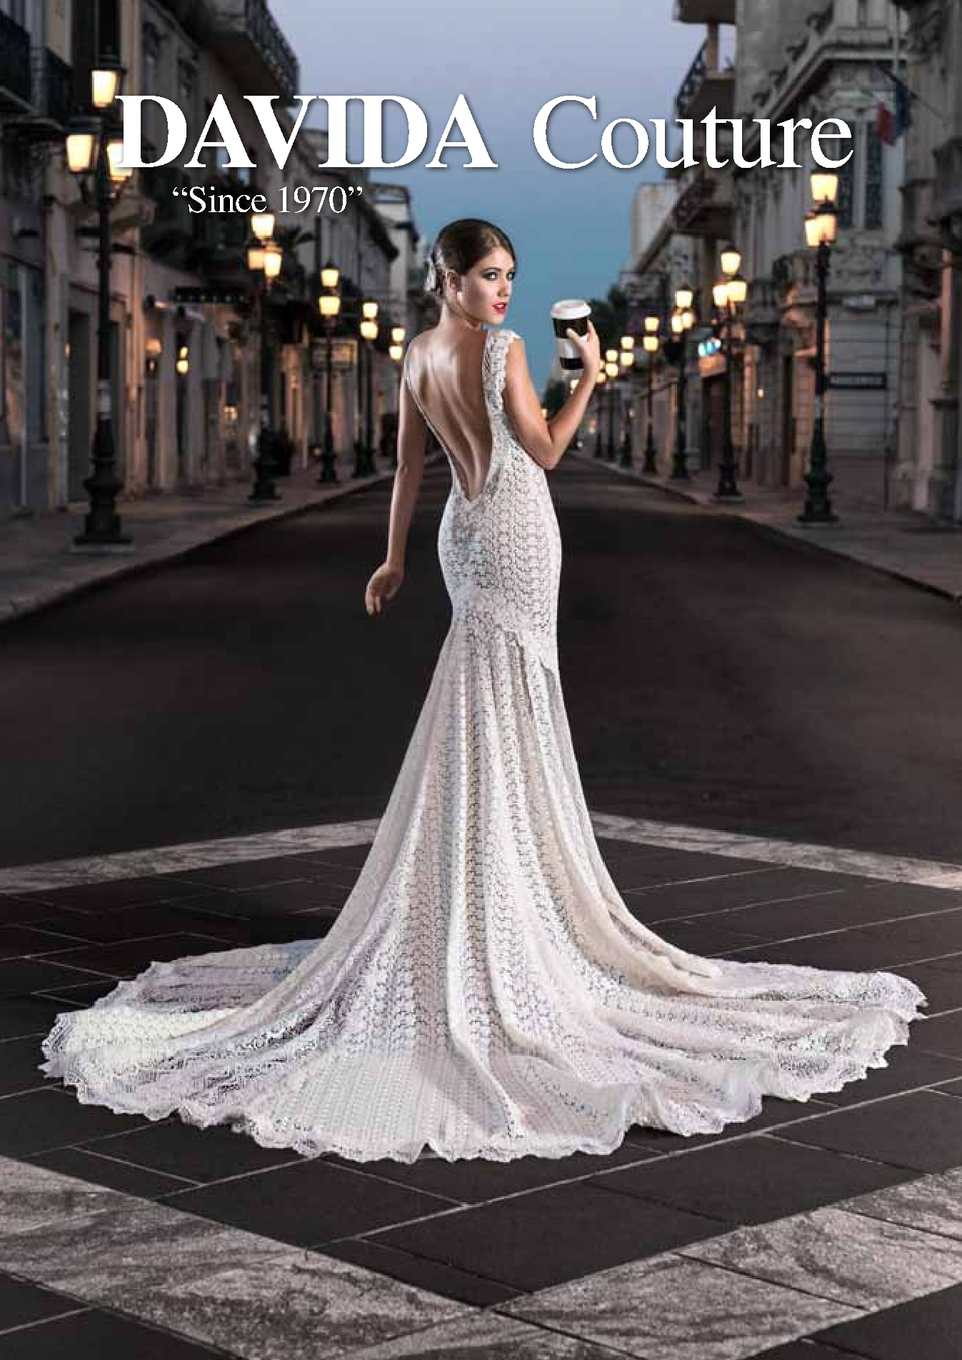 46b938166e91 Cool italia dress  Outlet abiti da sposa reggio calabria